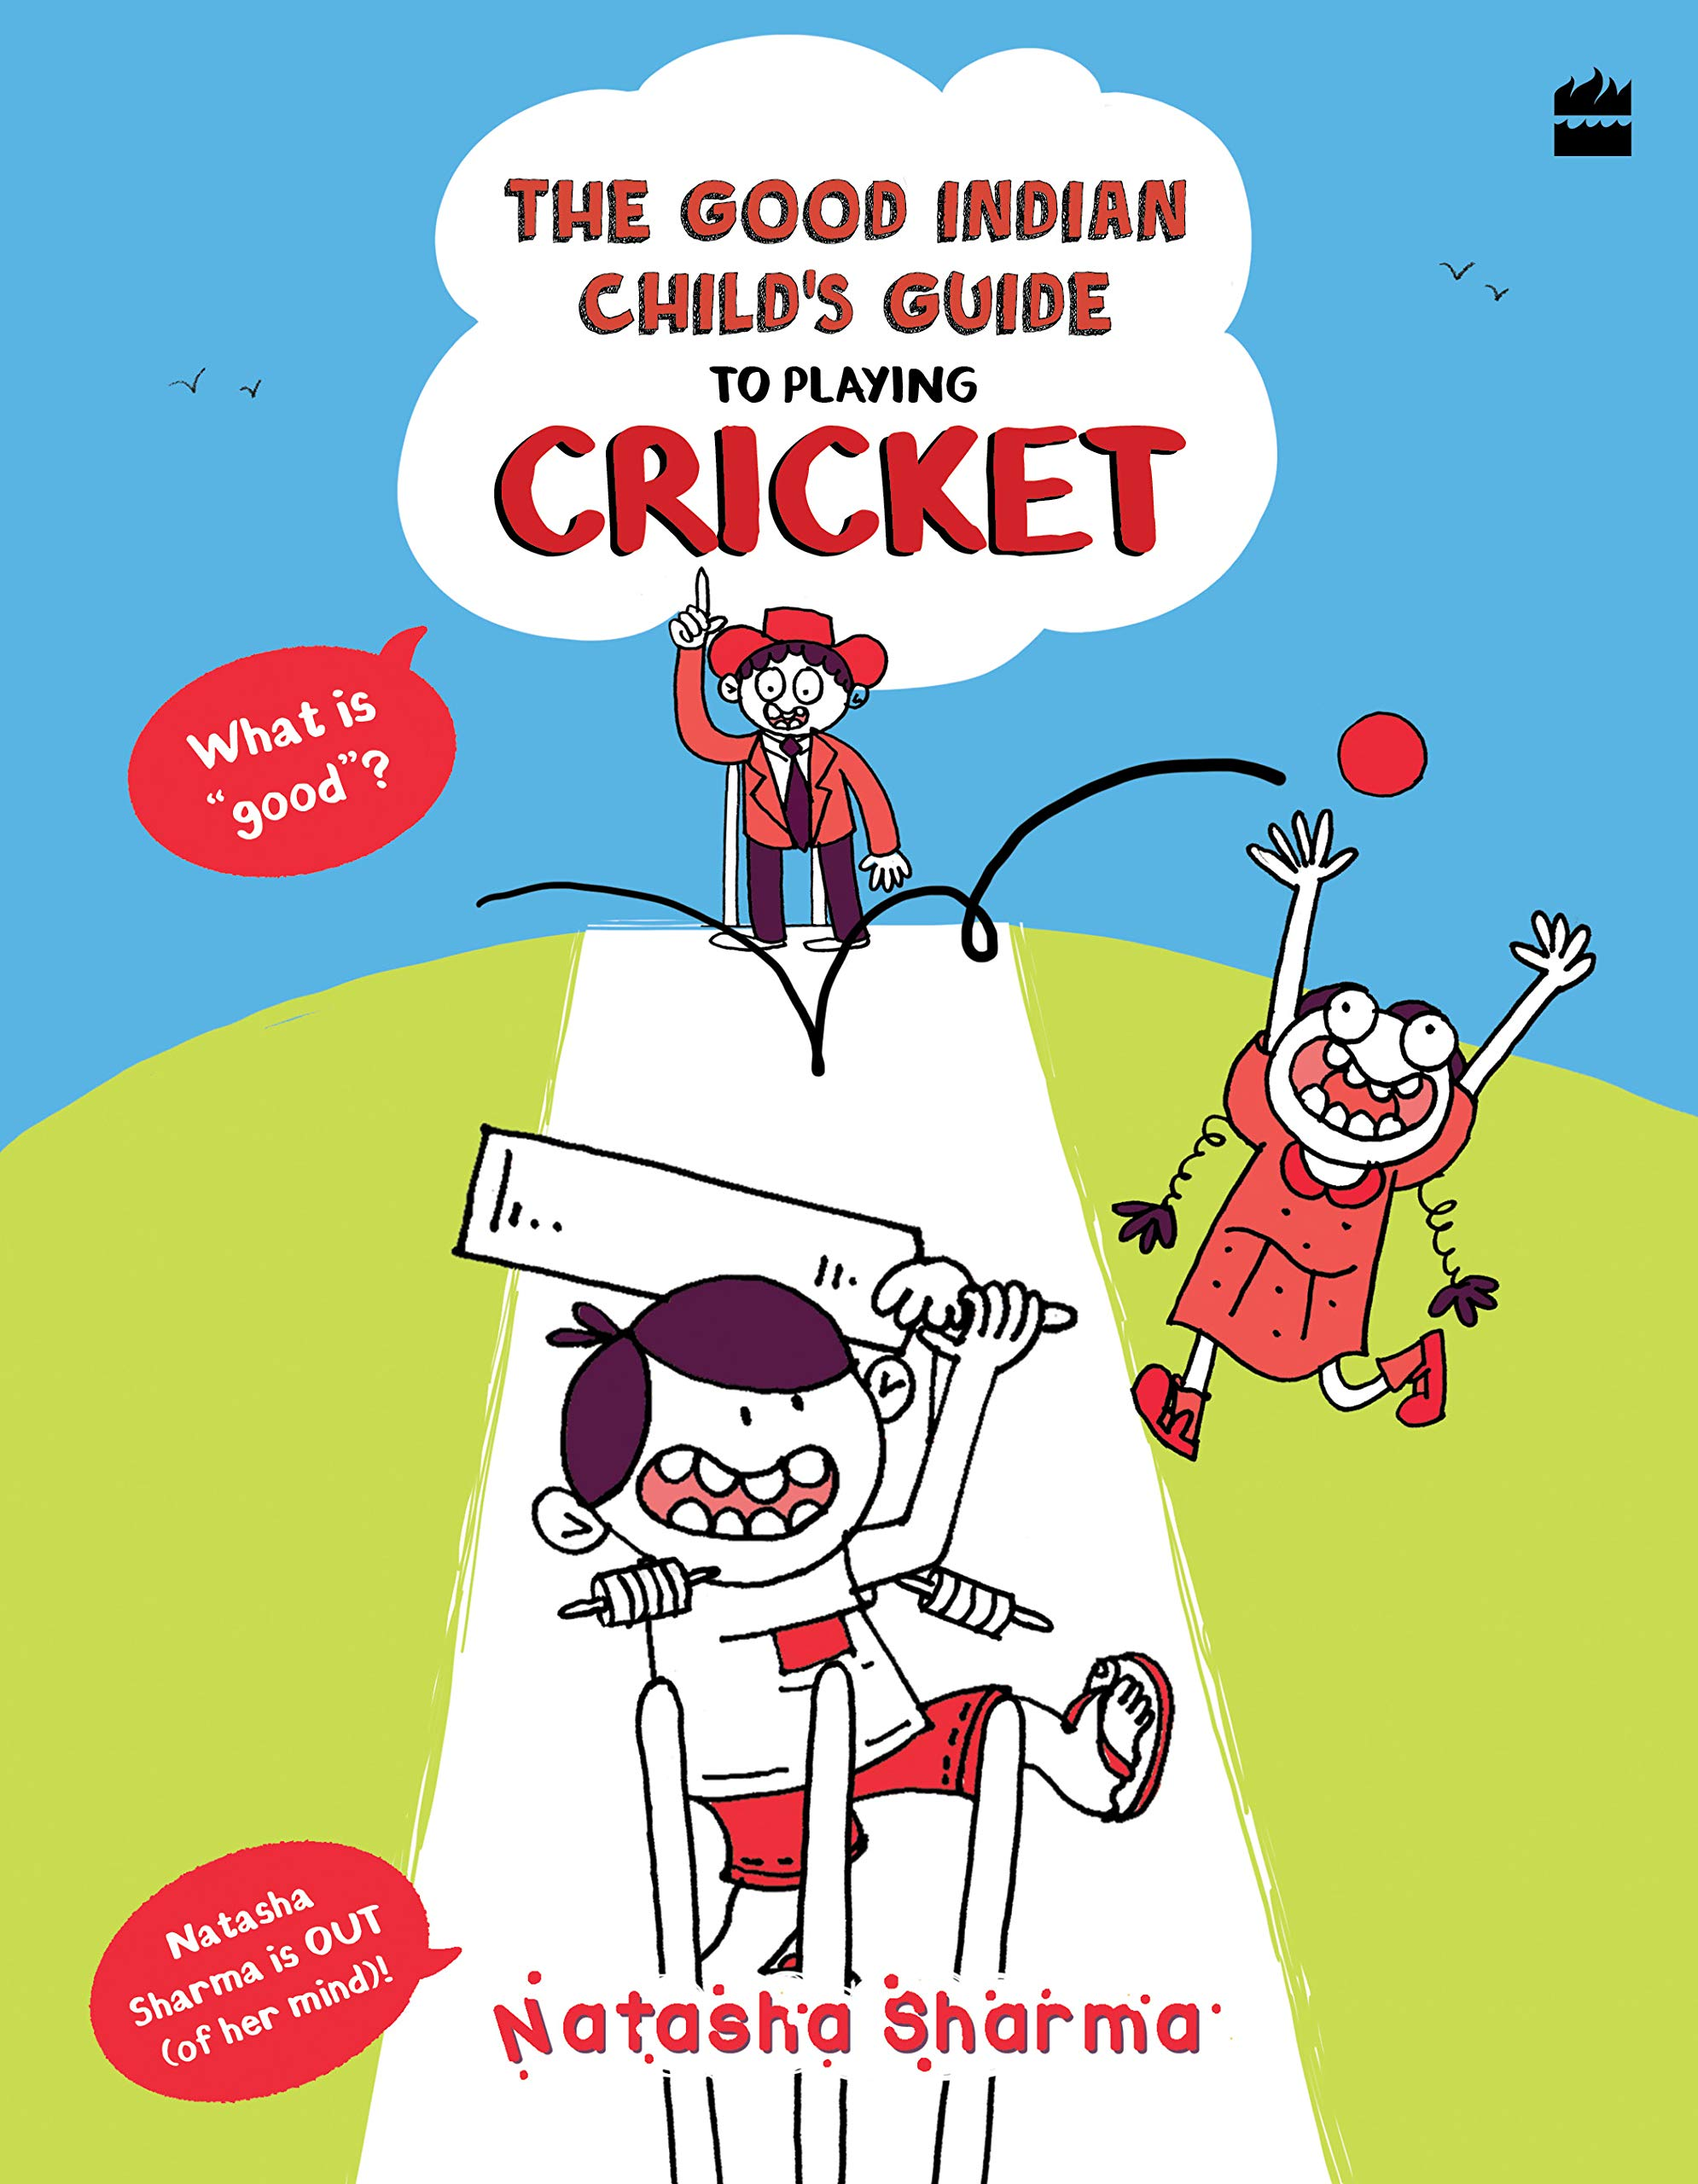 The Good Indian Child's Guide: To Playing Cricket by Natasha Sharma